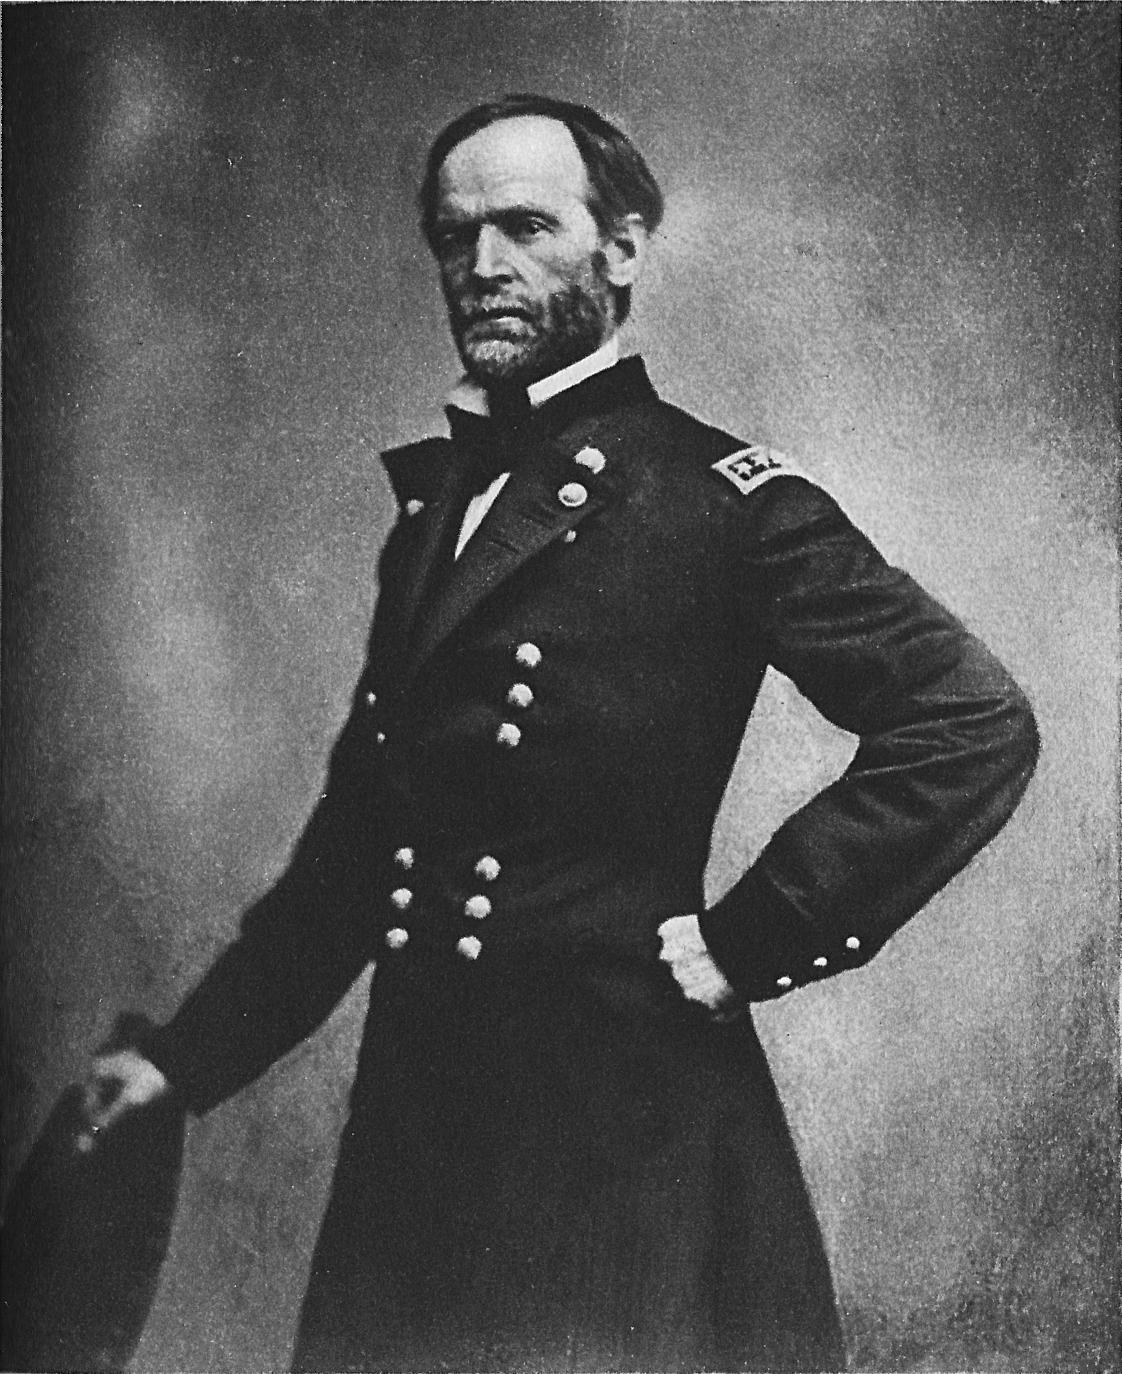 an analysis of the life of william tecumseh sherman and his march to the sea William tecumseh sherman's parents were charles robert sherman and mary hoyt sherman of lancaster, ohio the following link is to the what were the immediate and long term effects of general willian tecumseh sherman's march to the sea immediate - shock-and-awe on the part of.